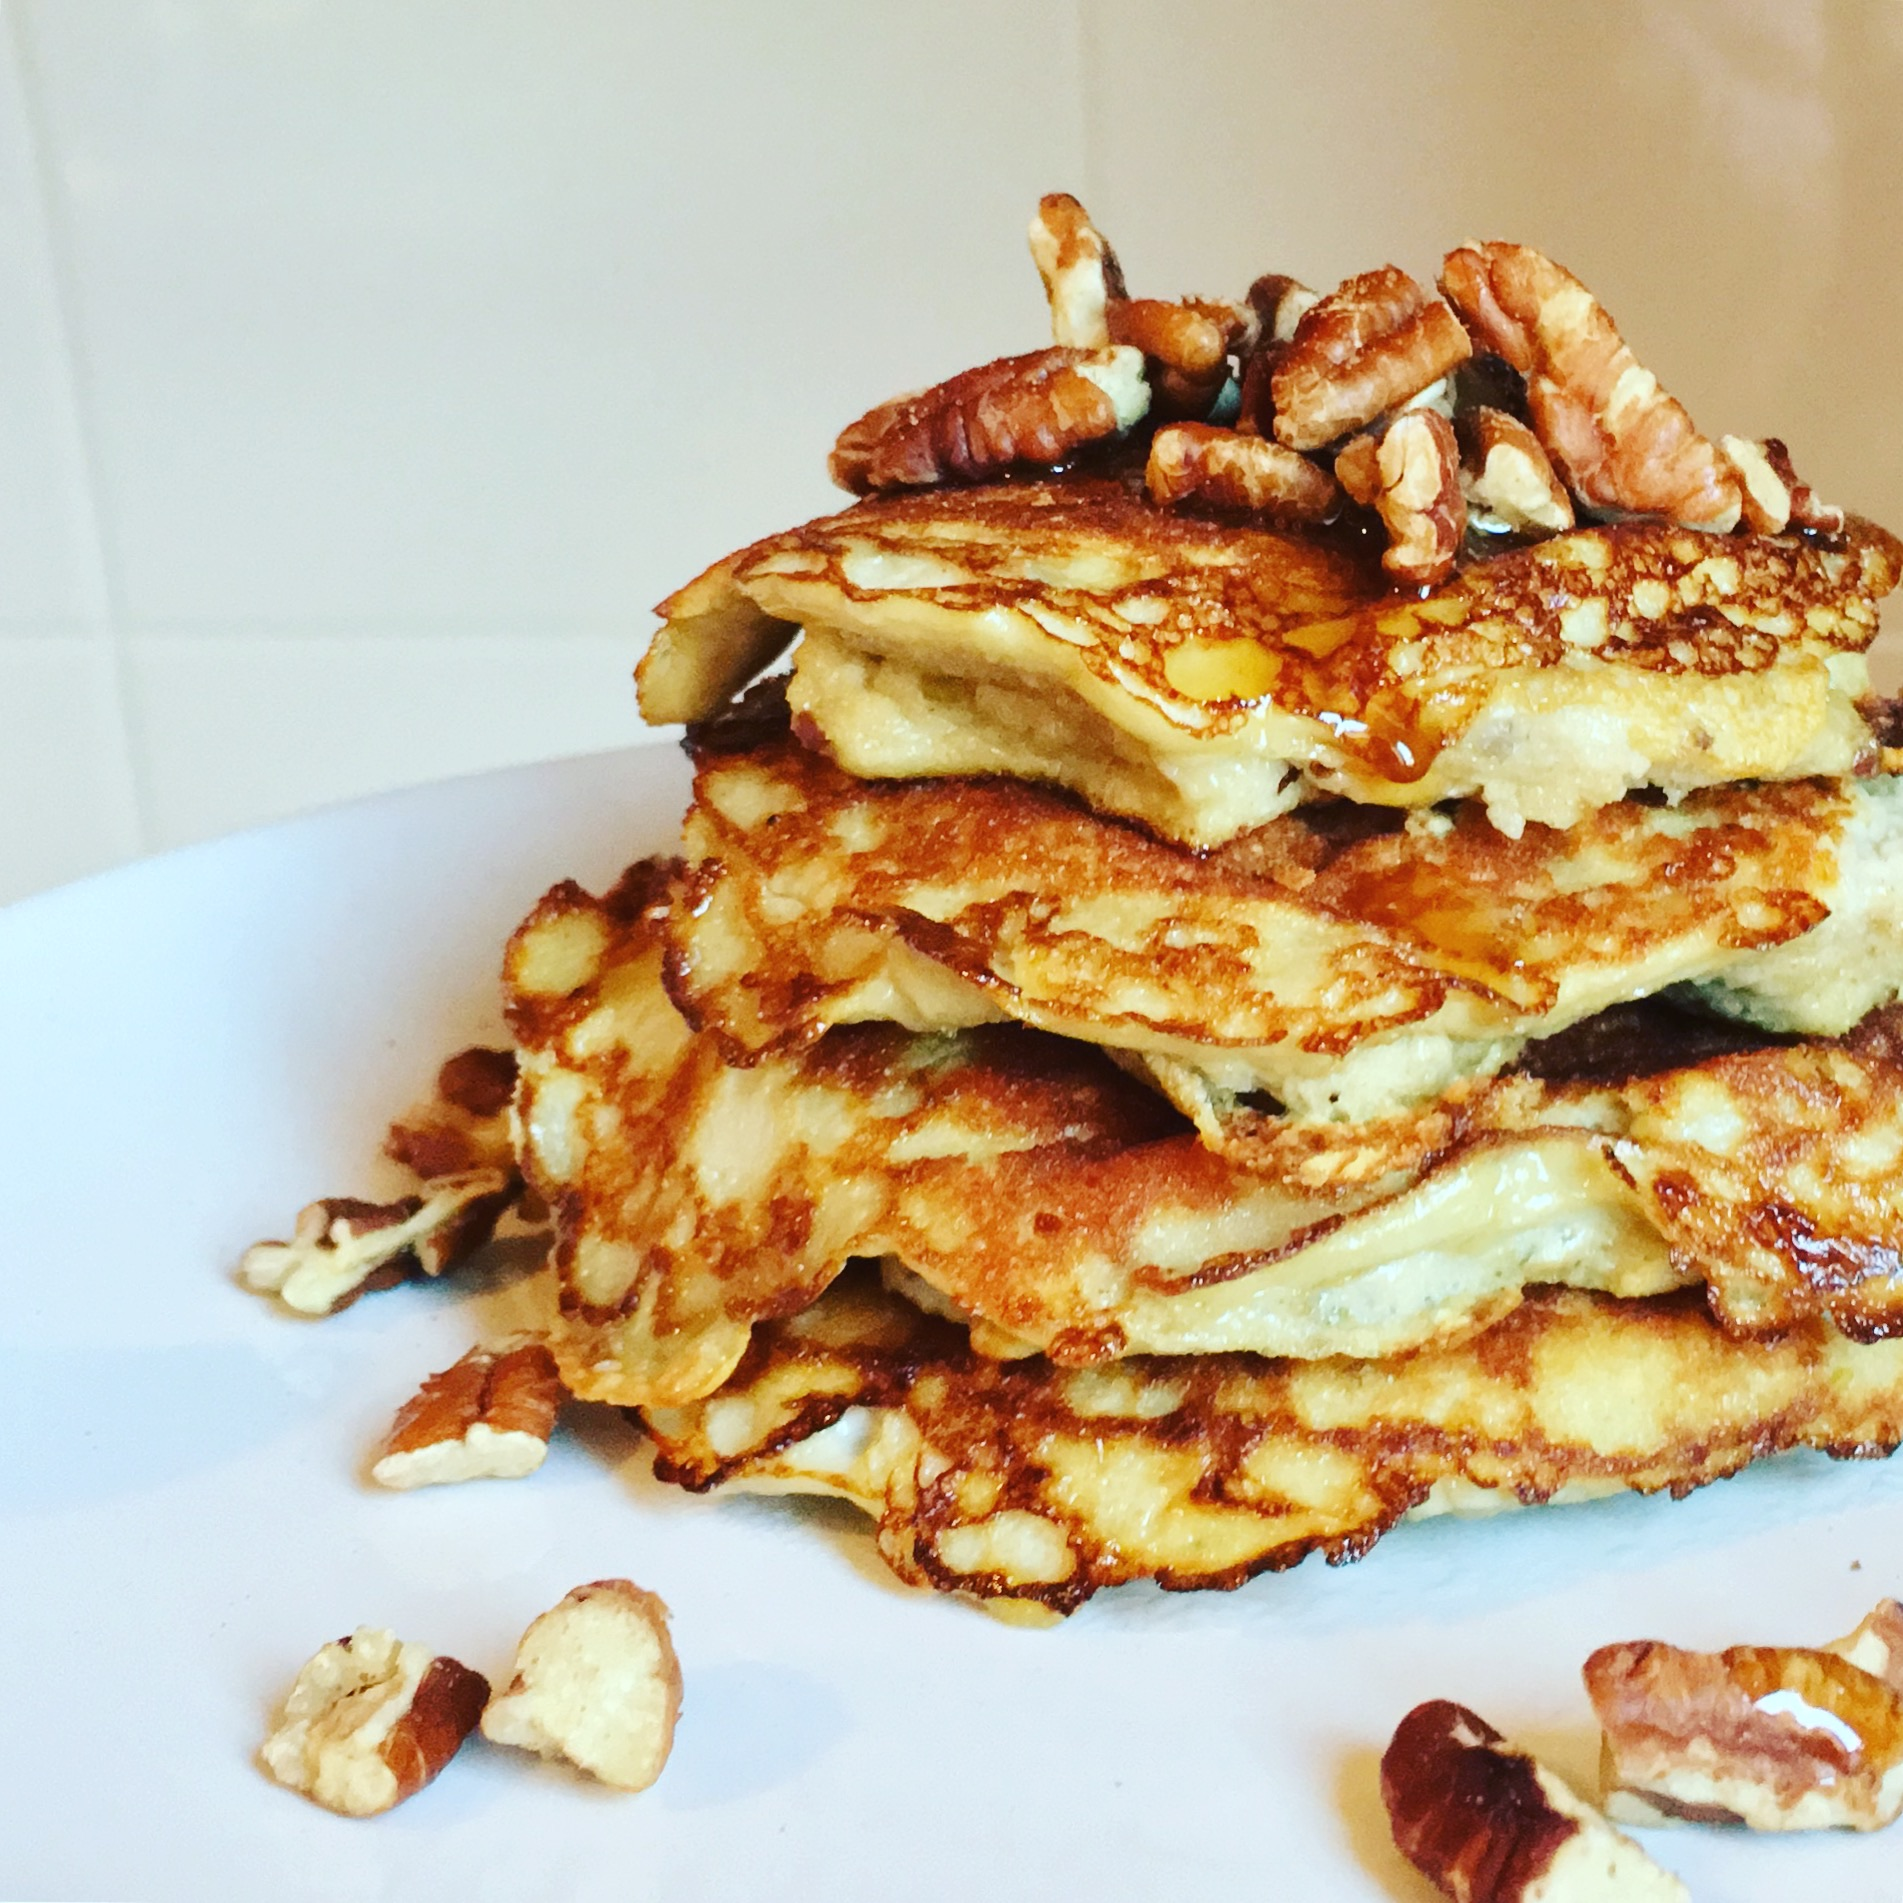 My Paleo Apple Pancakes